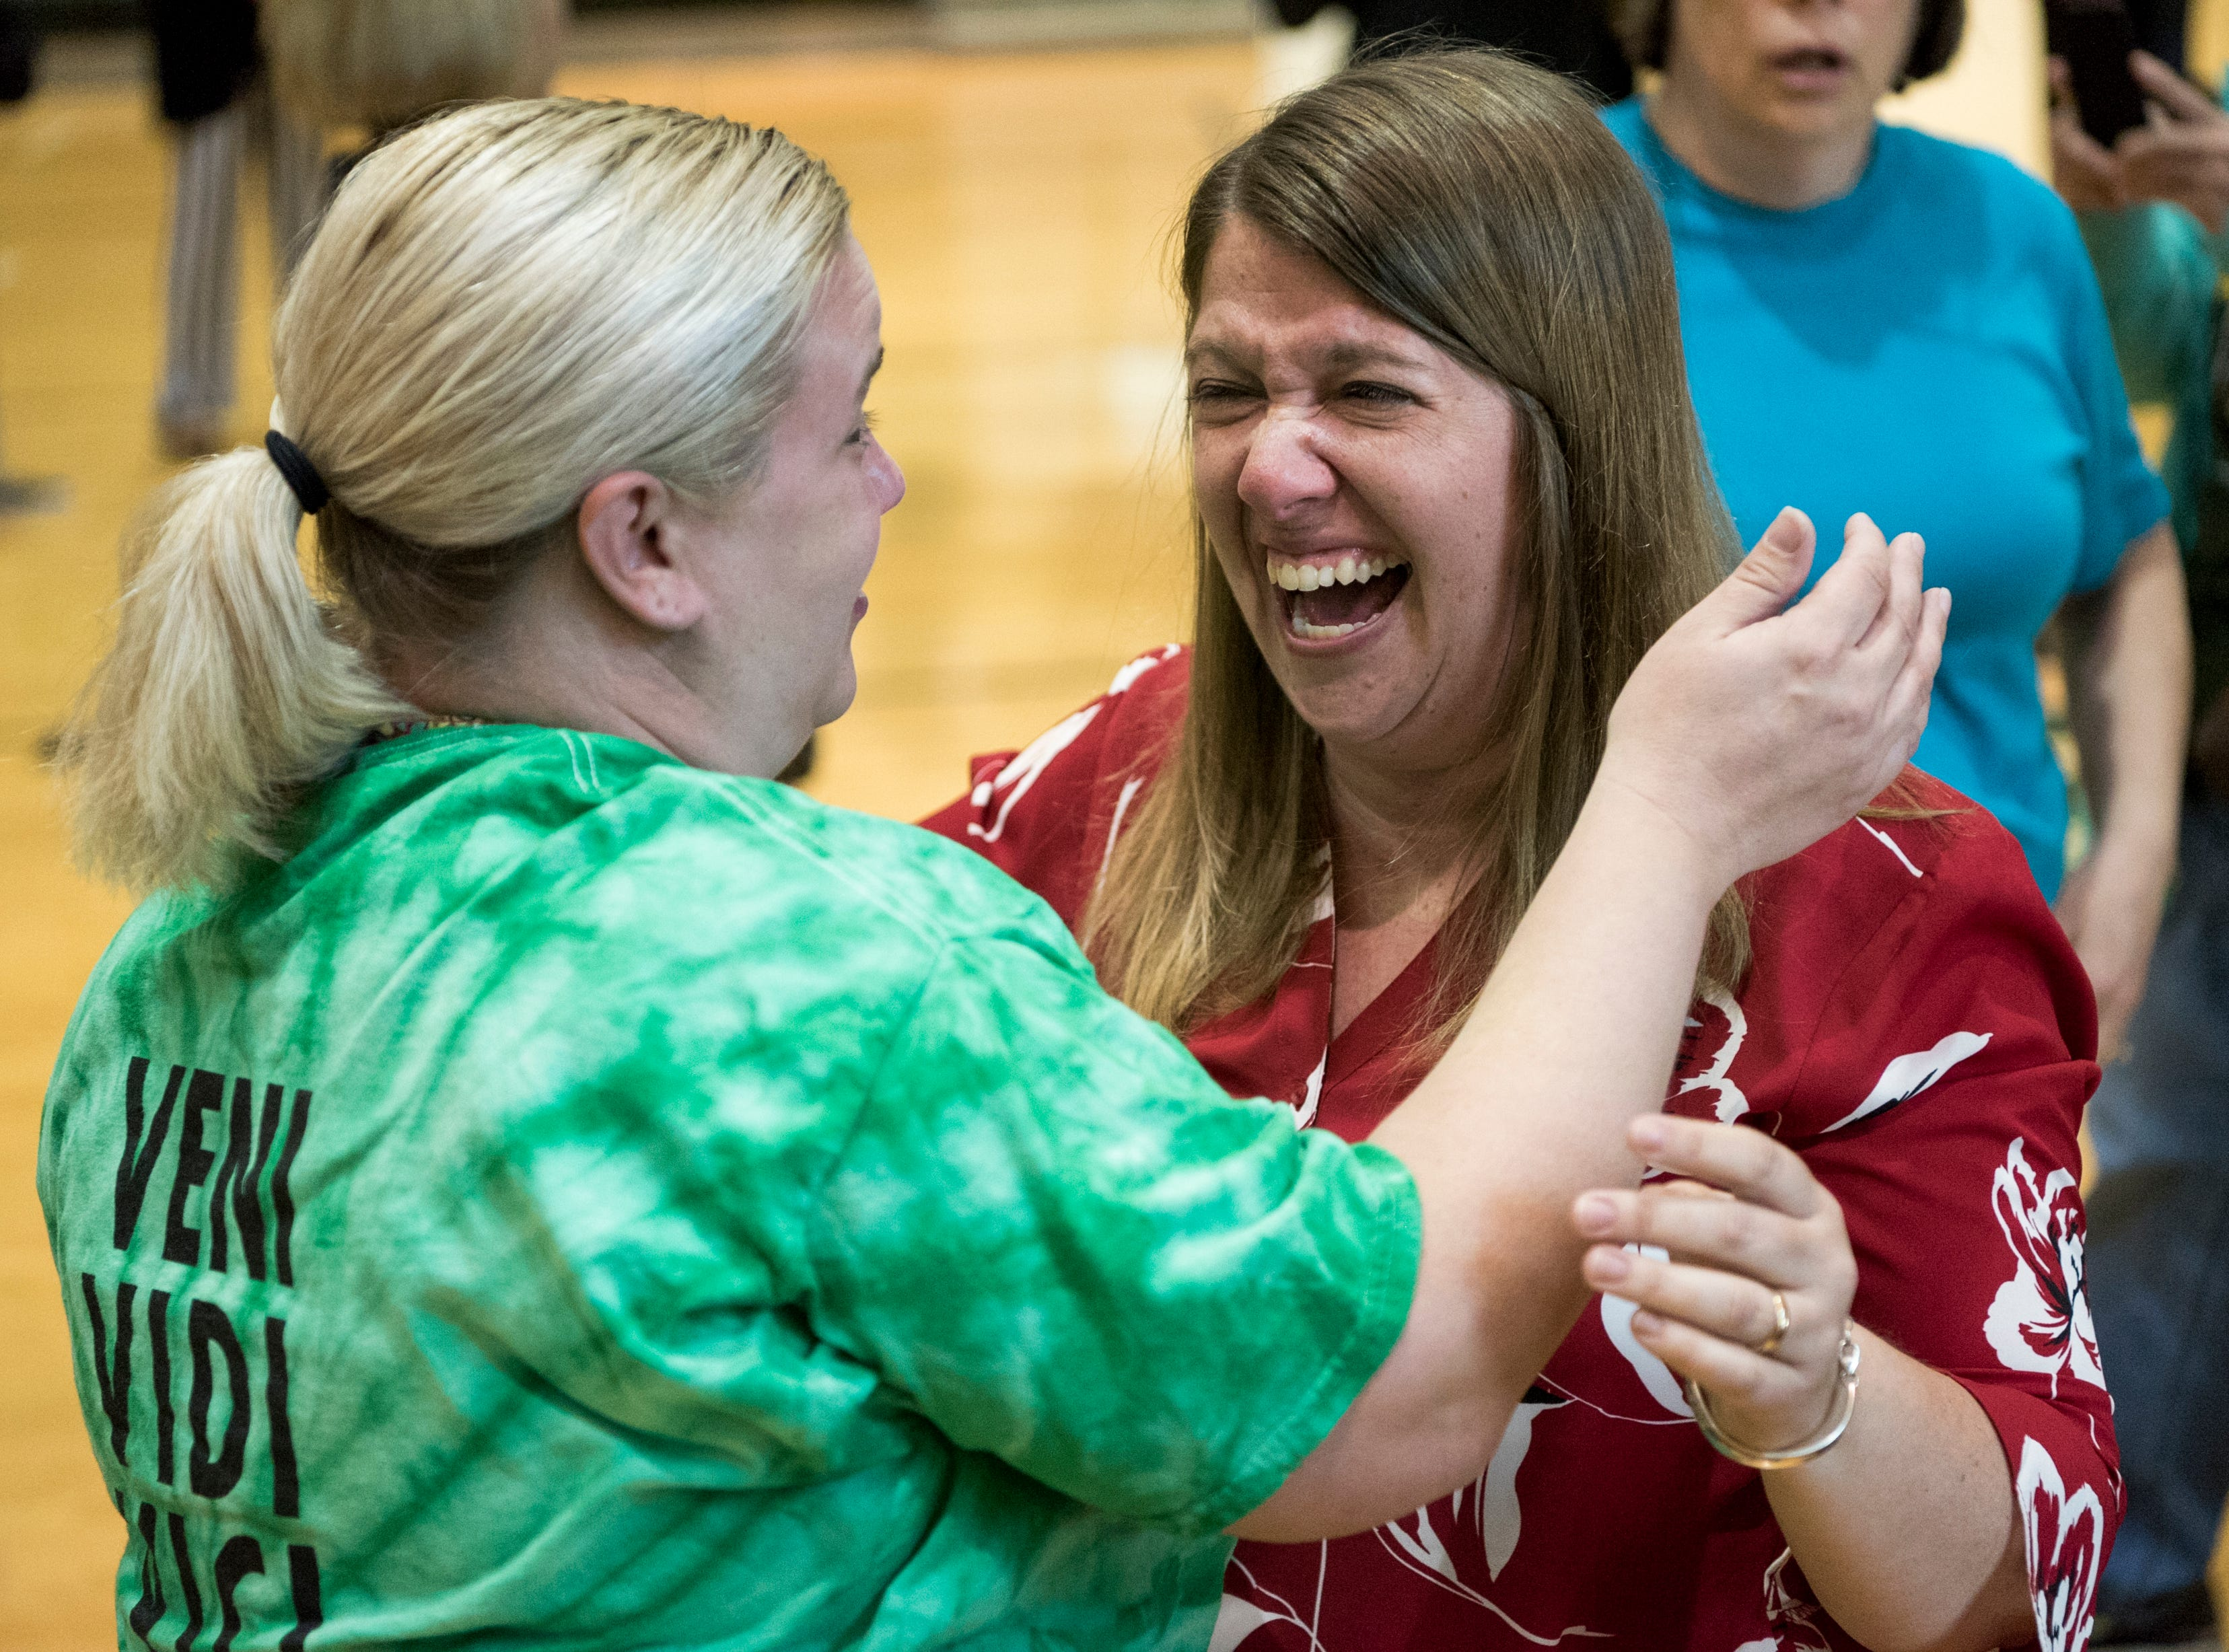 """Liz Hanisch, left, embraces her best friend Andrea Gordon following the Outstanding Educators of the Year awards ceremony at North High School in Evansville, Ind., Wednesday, April 10, 2019. """"This is the longest I've ever had to keep a secret from her,"""" Hanisch said about Gordon being named the 2019 High School Teacher of the Year."""